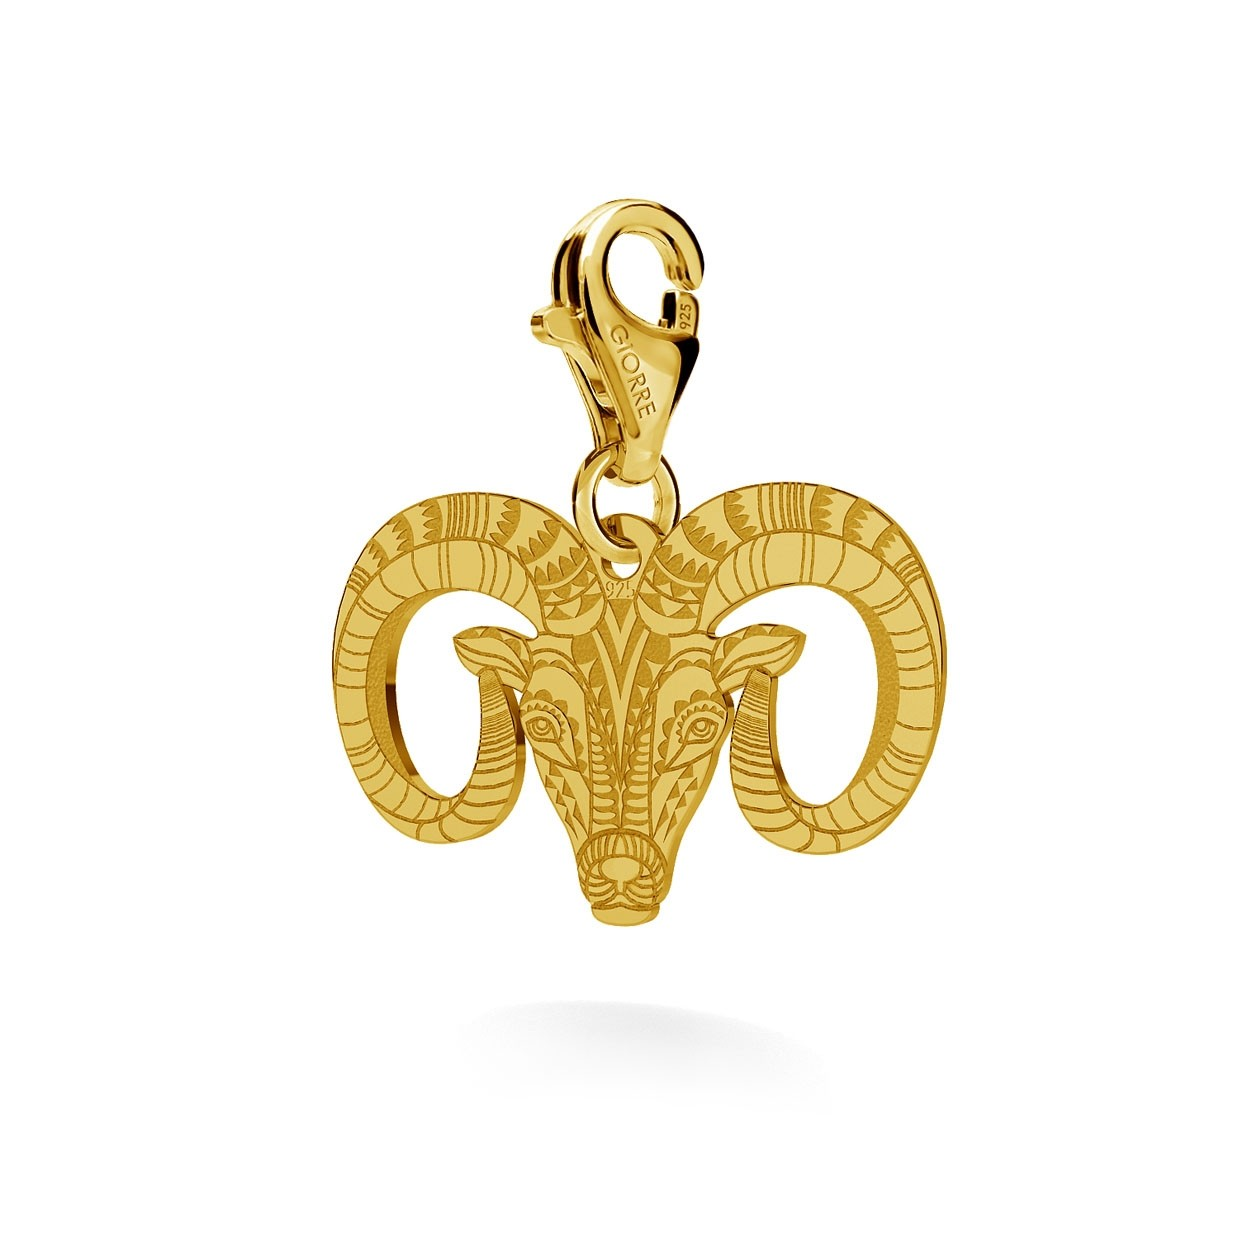 CHARM 82, MUFLON, SILVER 925, RHODIUM OR GOLD PLATED